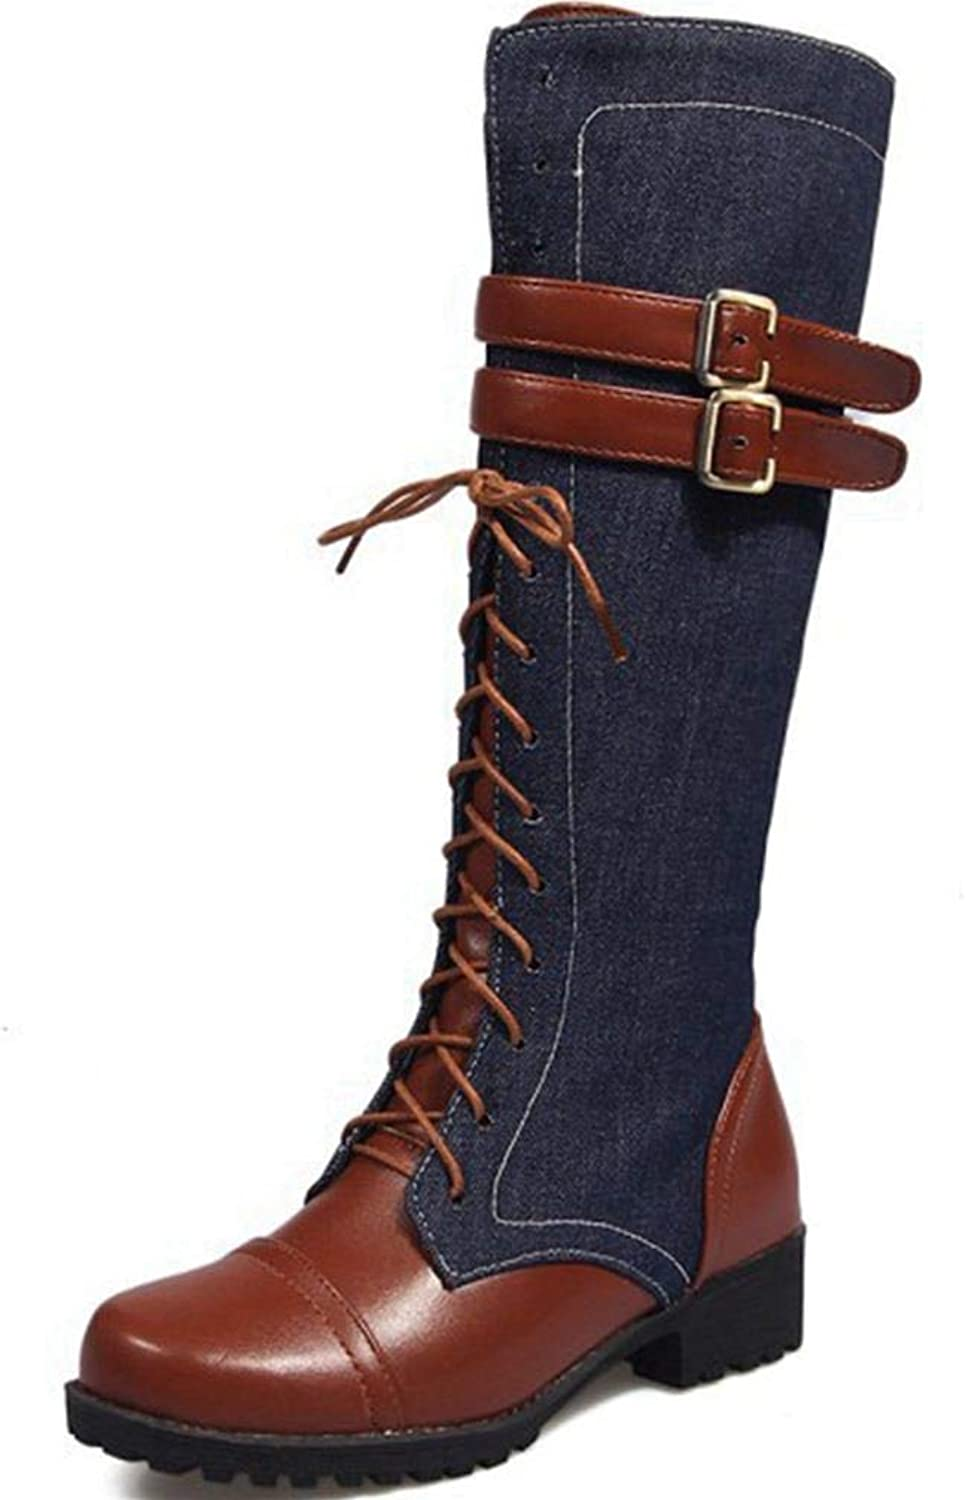 Kaloosh Women's Fashion Buckle Dazzling Neutral Buckle Lace up Synthetic Round Toe Comfort Riding Boots Knee High Boots